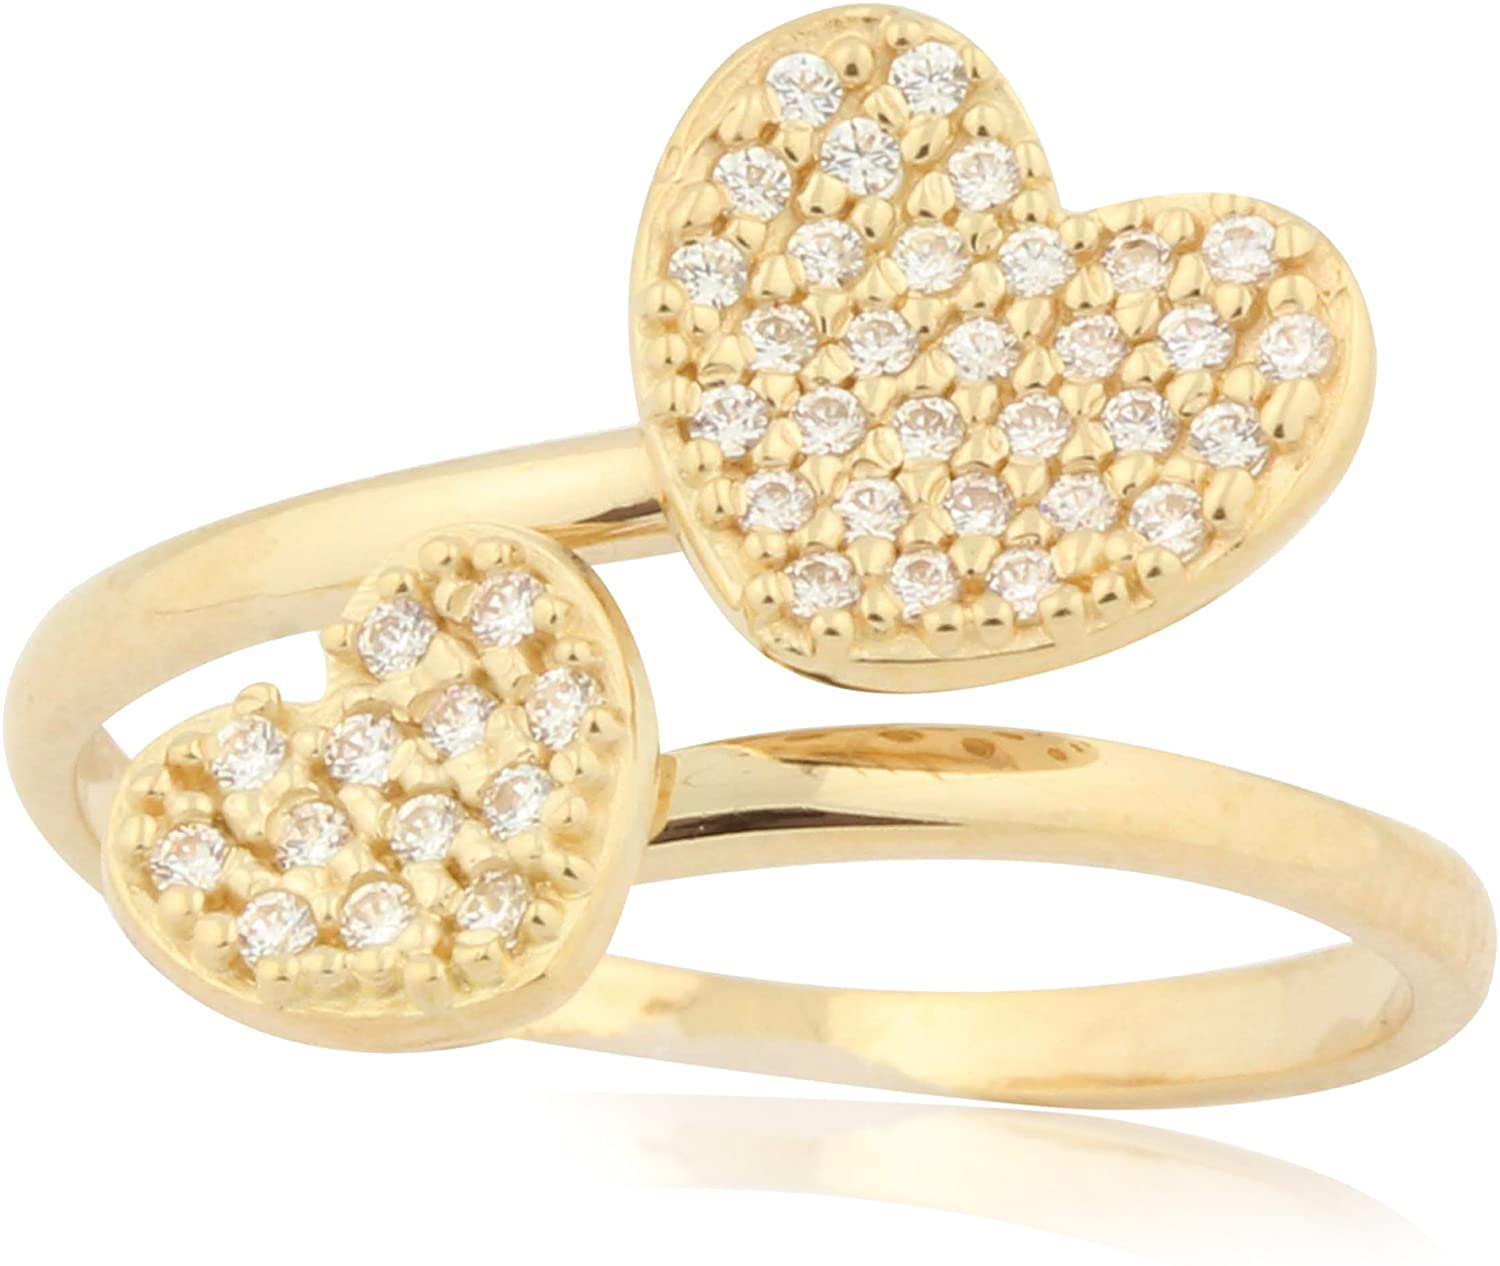 UNICORNJ Childrens 14k Yellow Gold Cubic Zirconia Pave Double Heart Open Ring Italy